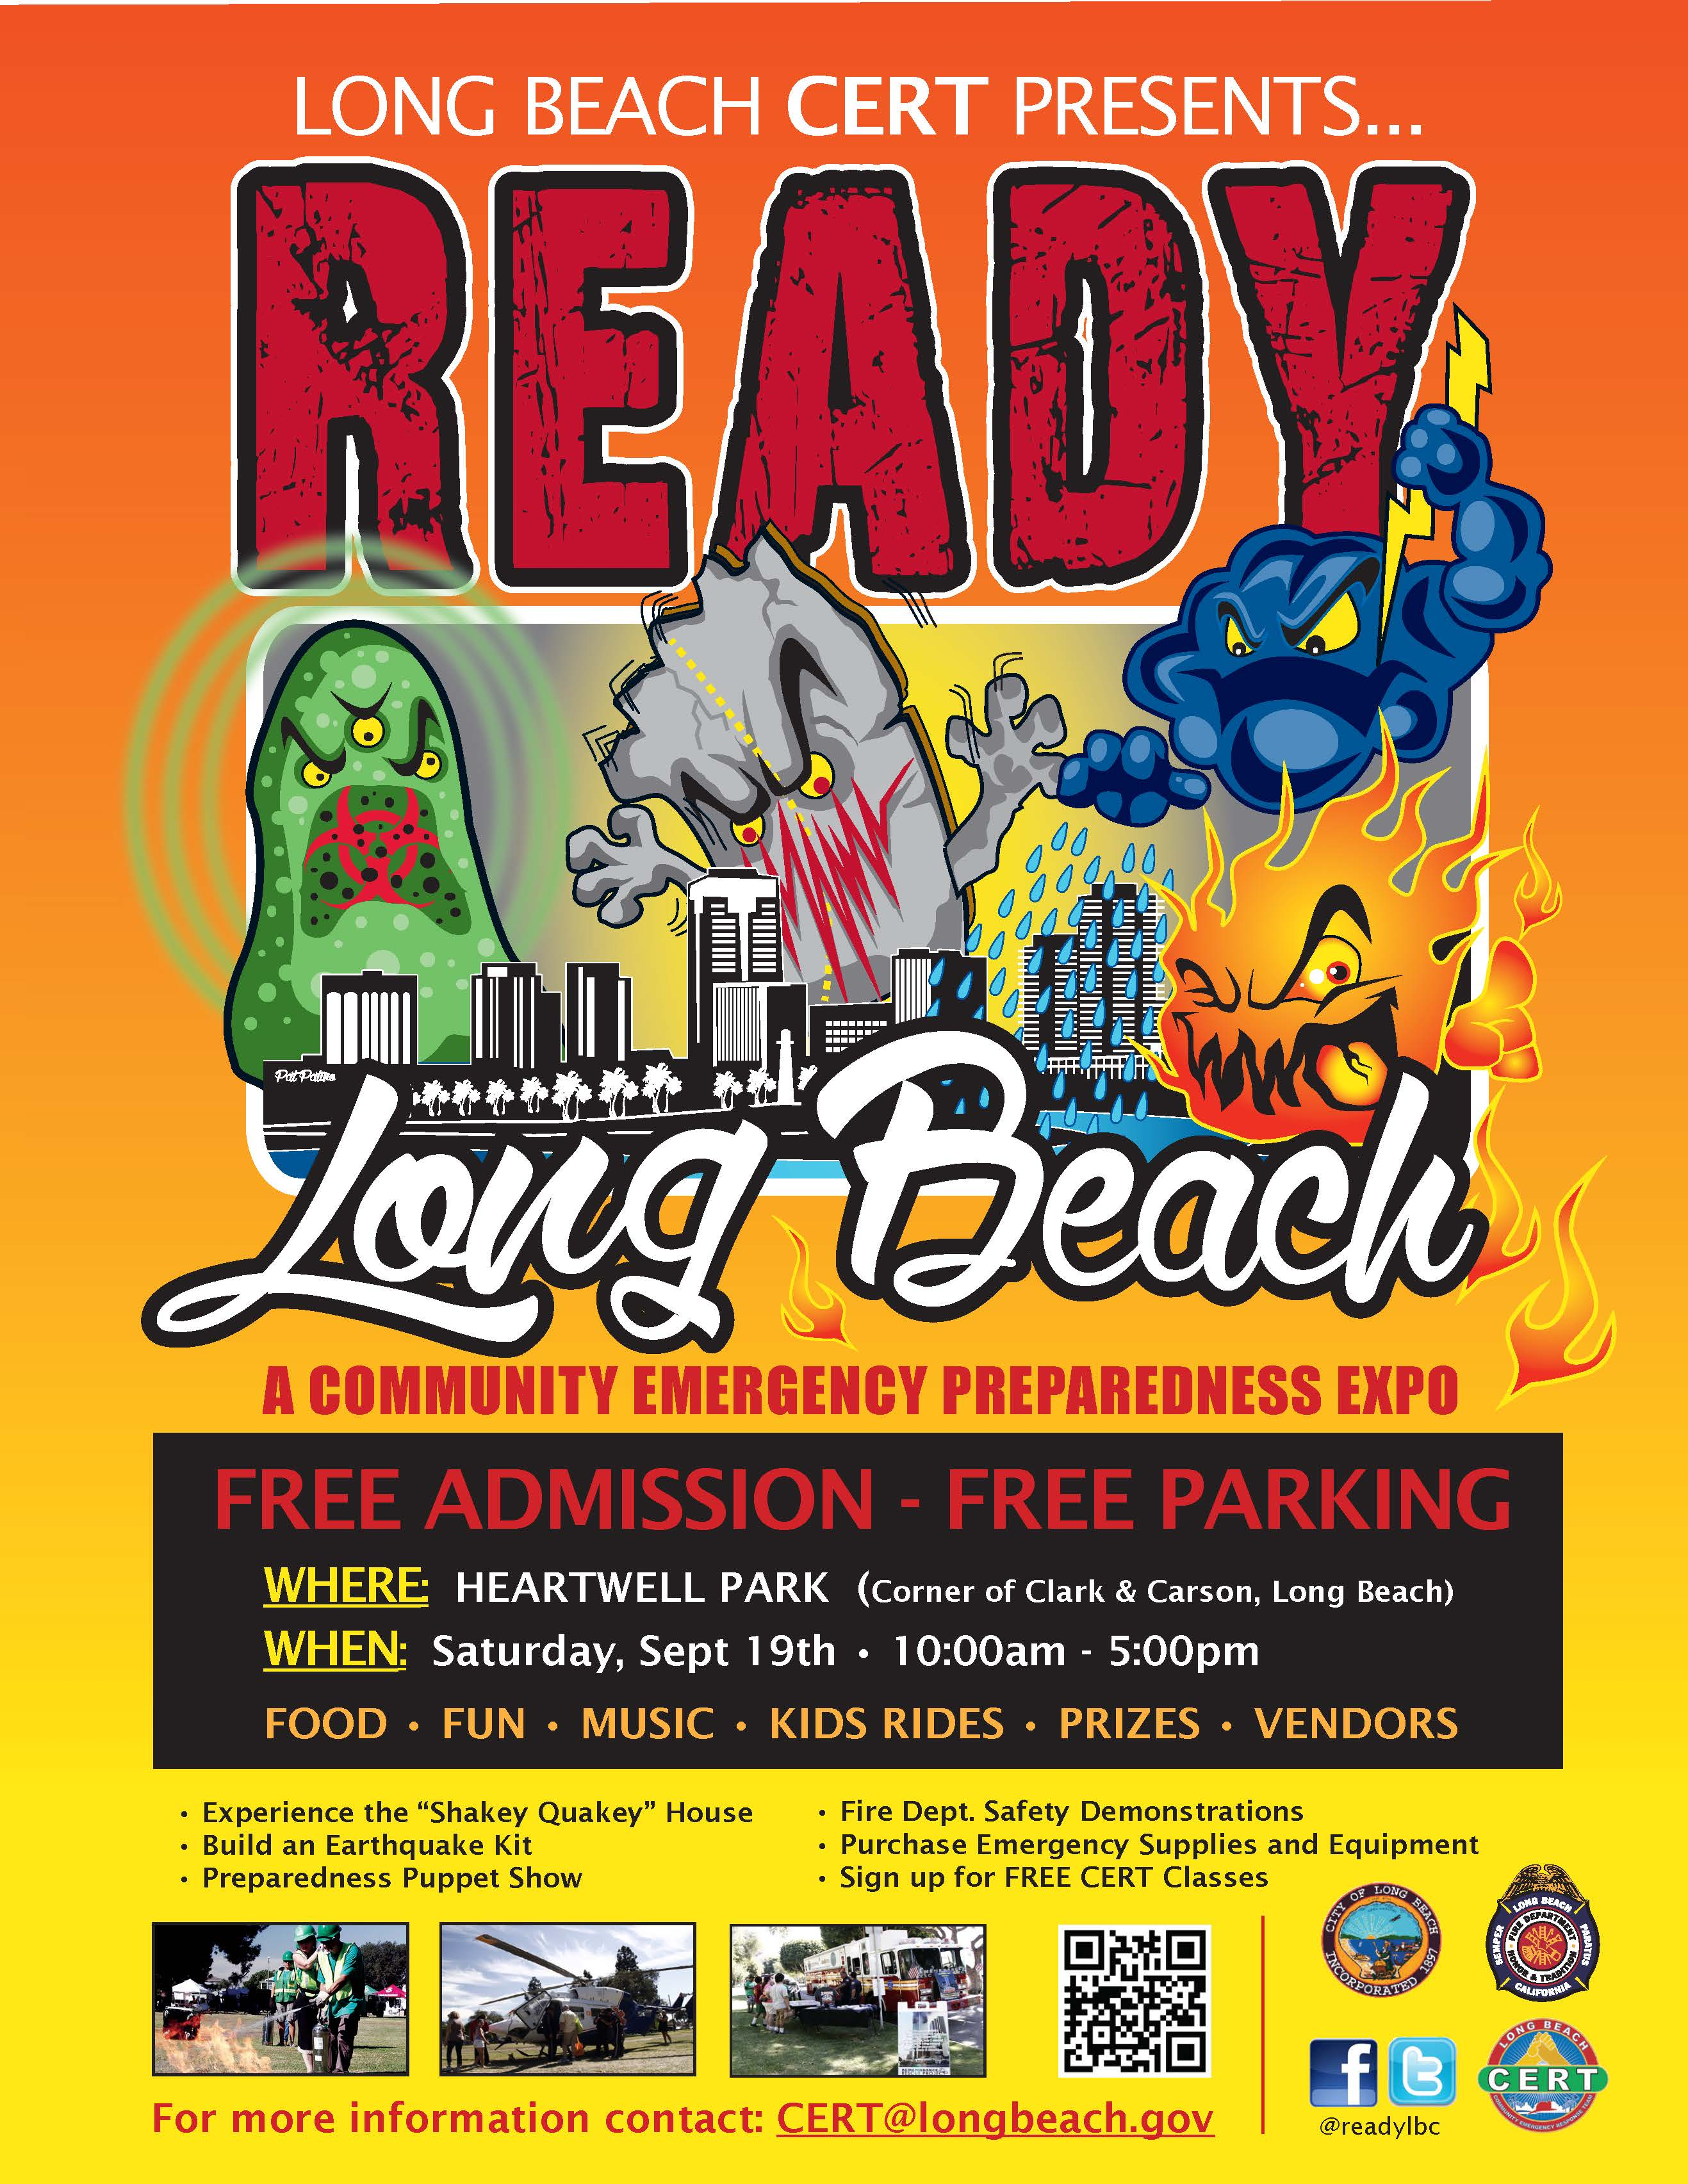 Ready Long Beach 2015 Flyer